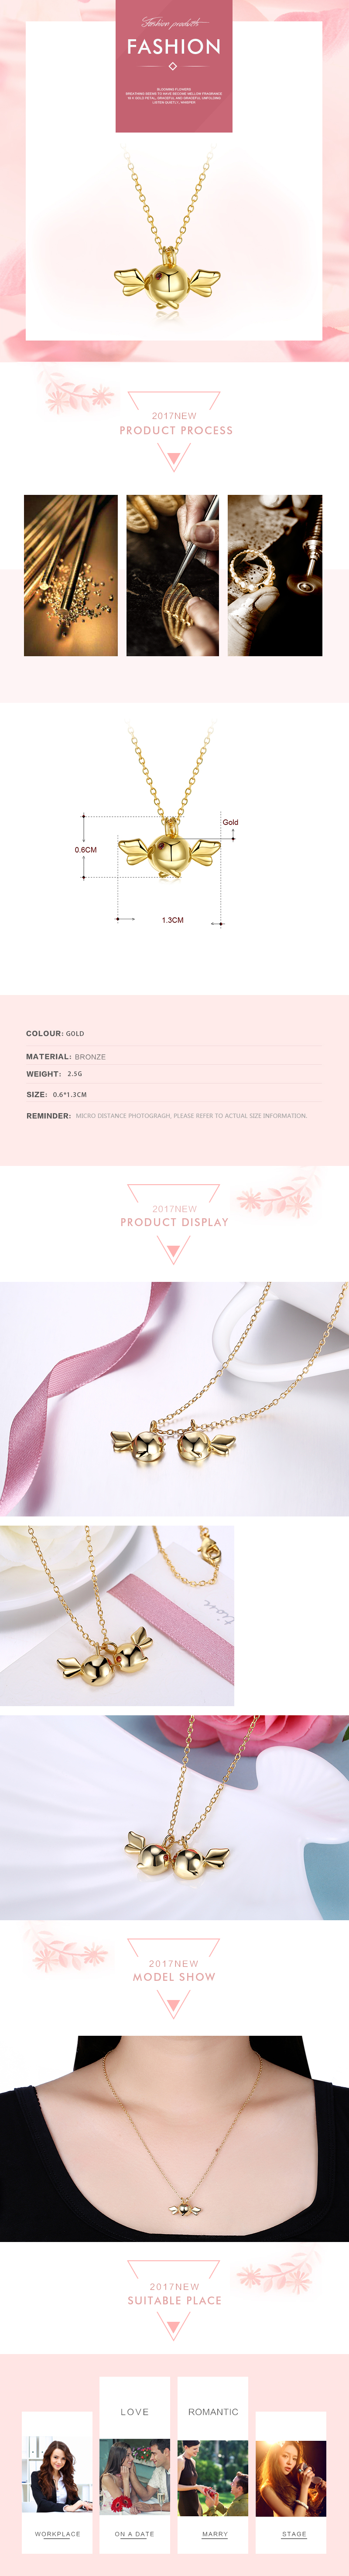 Necklaces NHKL12182